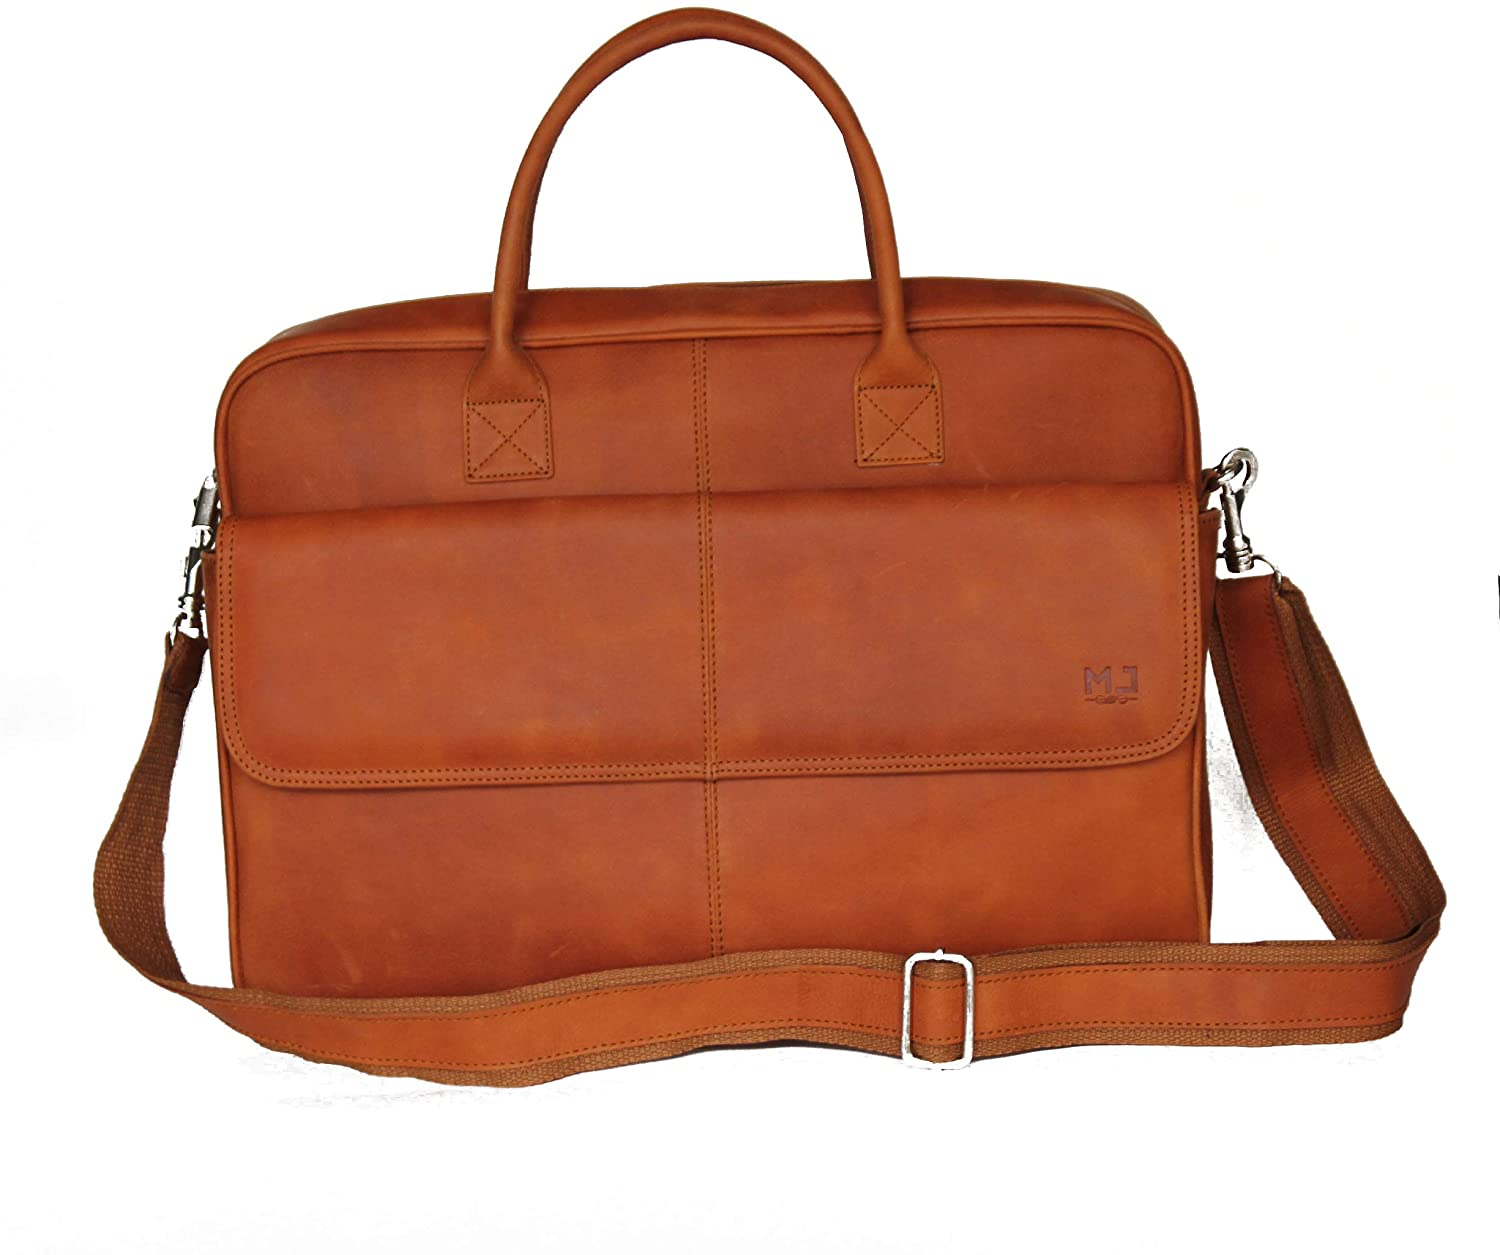 leather genuine briefcase Bag for men - Laptop computer bag